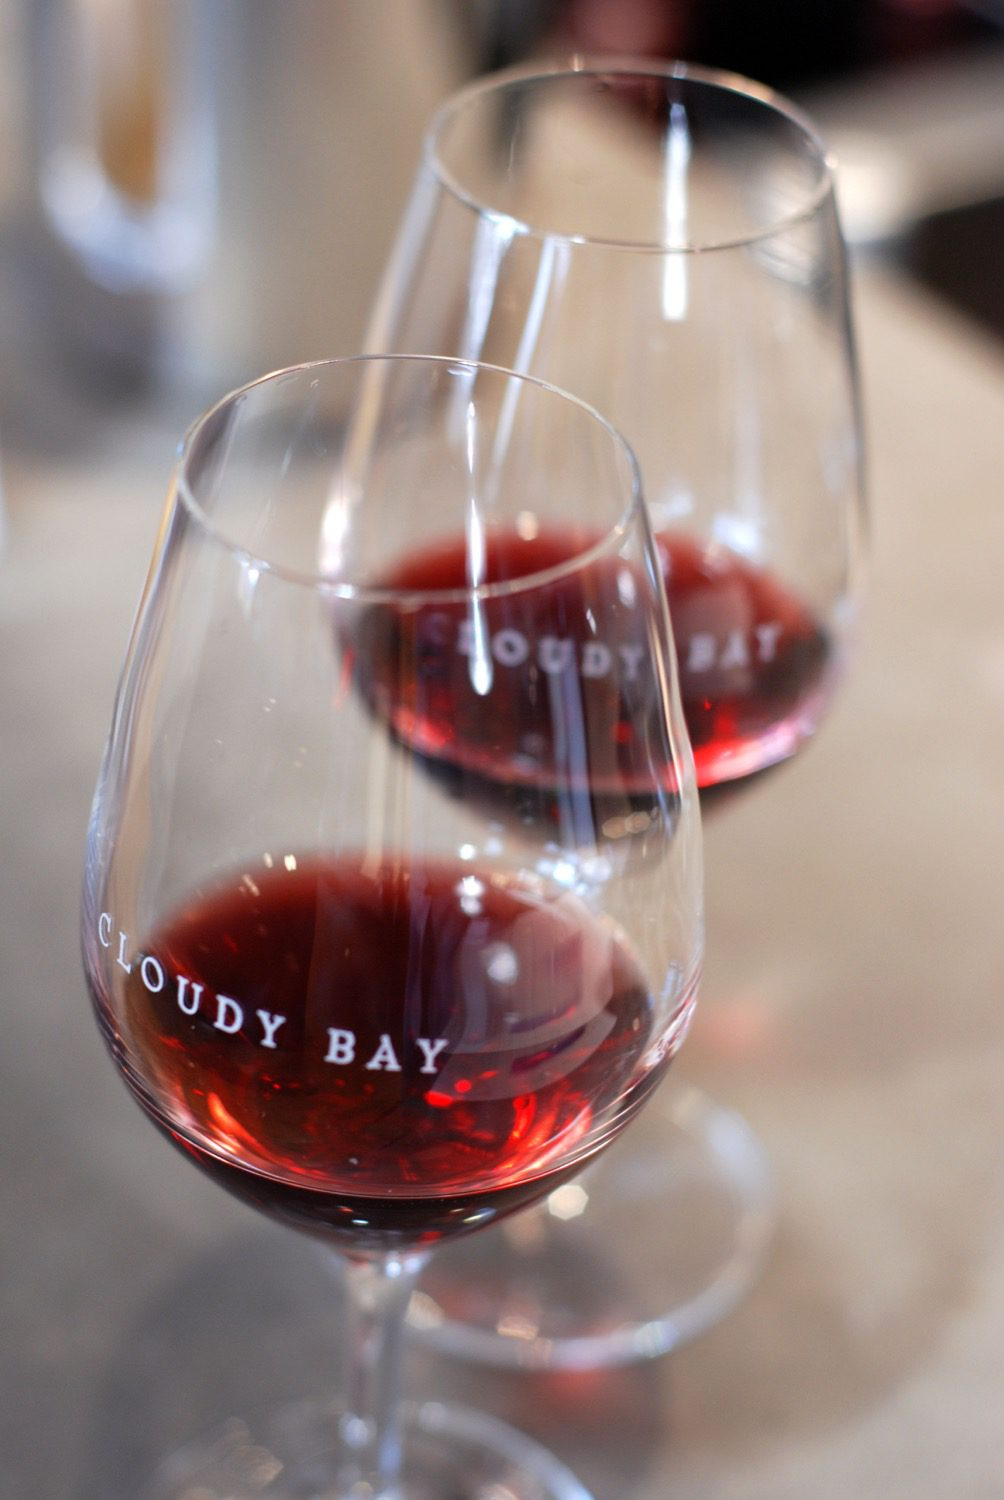 cloudy-bay-neuseeland-winery-11